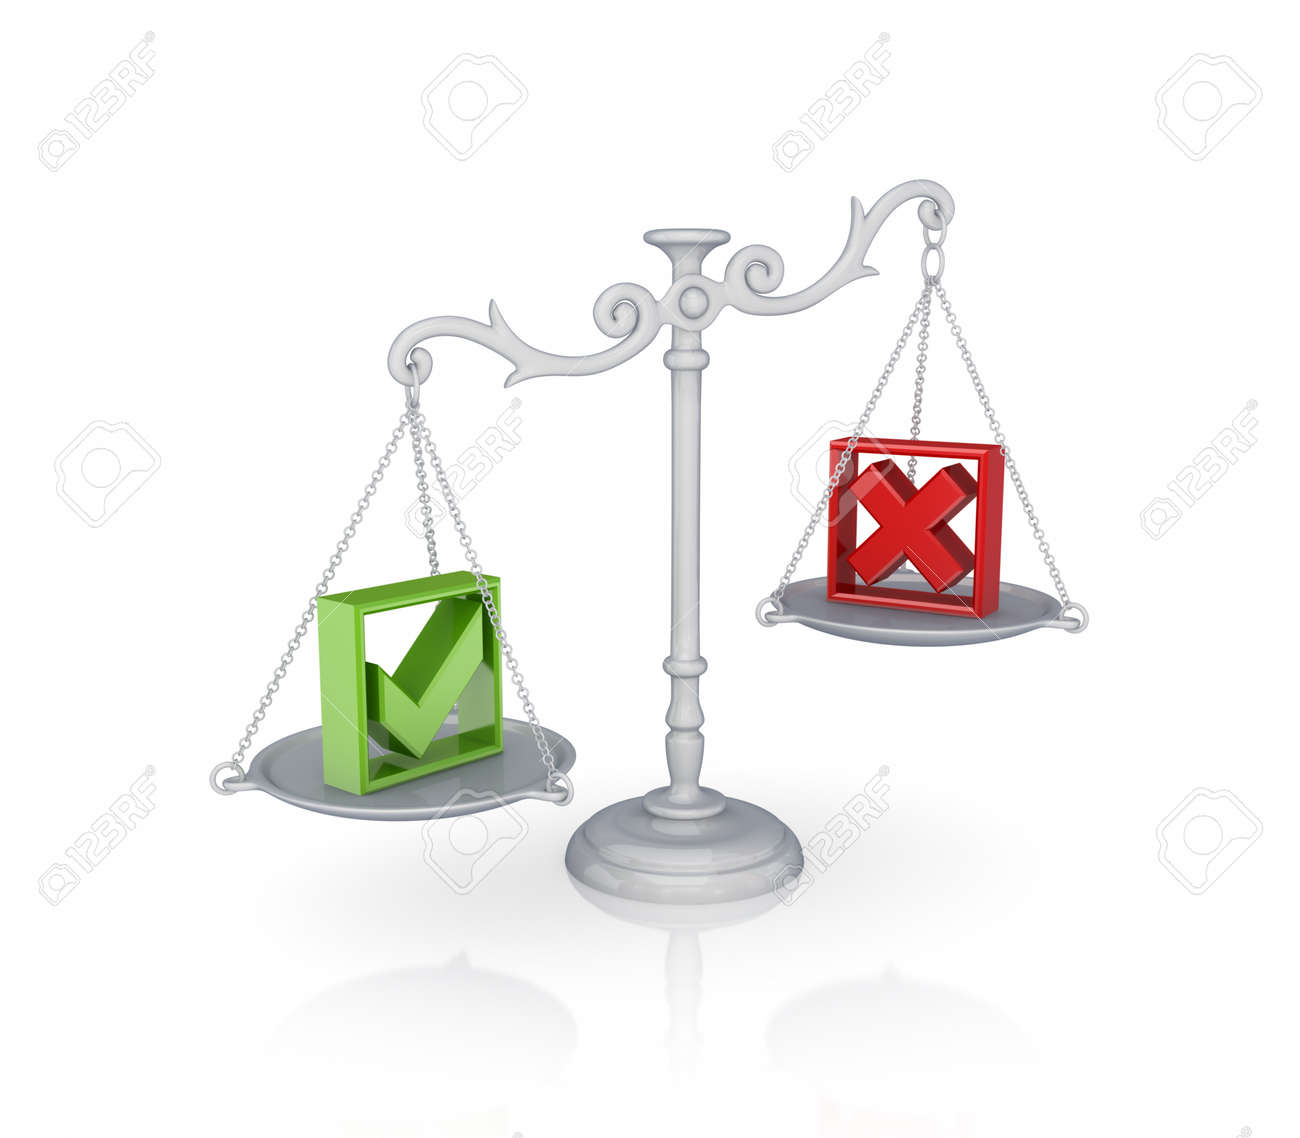 Antique scales with a tick and cross marks. Isolated on white background.3d rendered. Stock Photo - 12222874